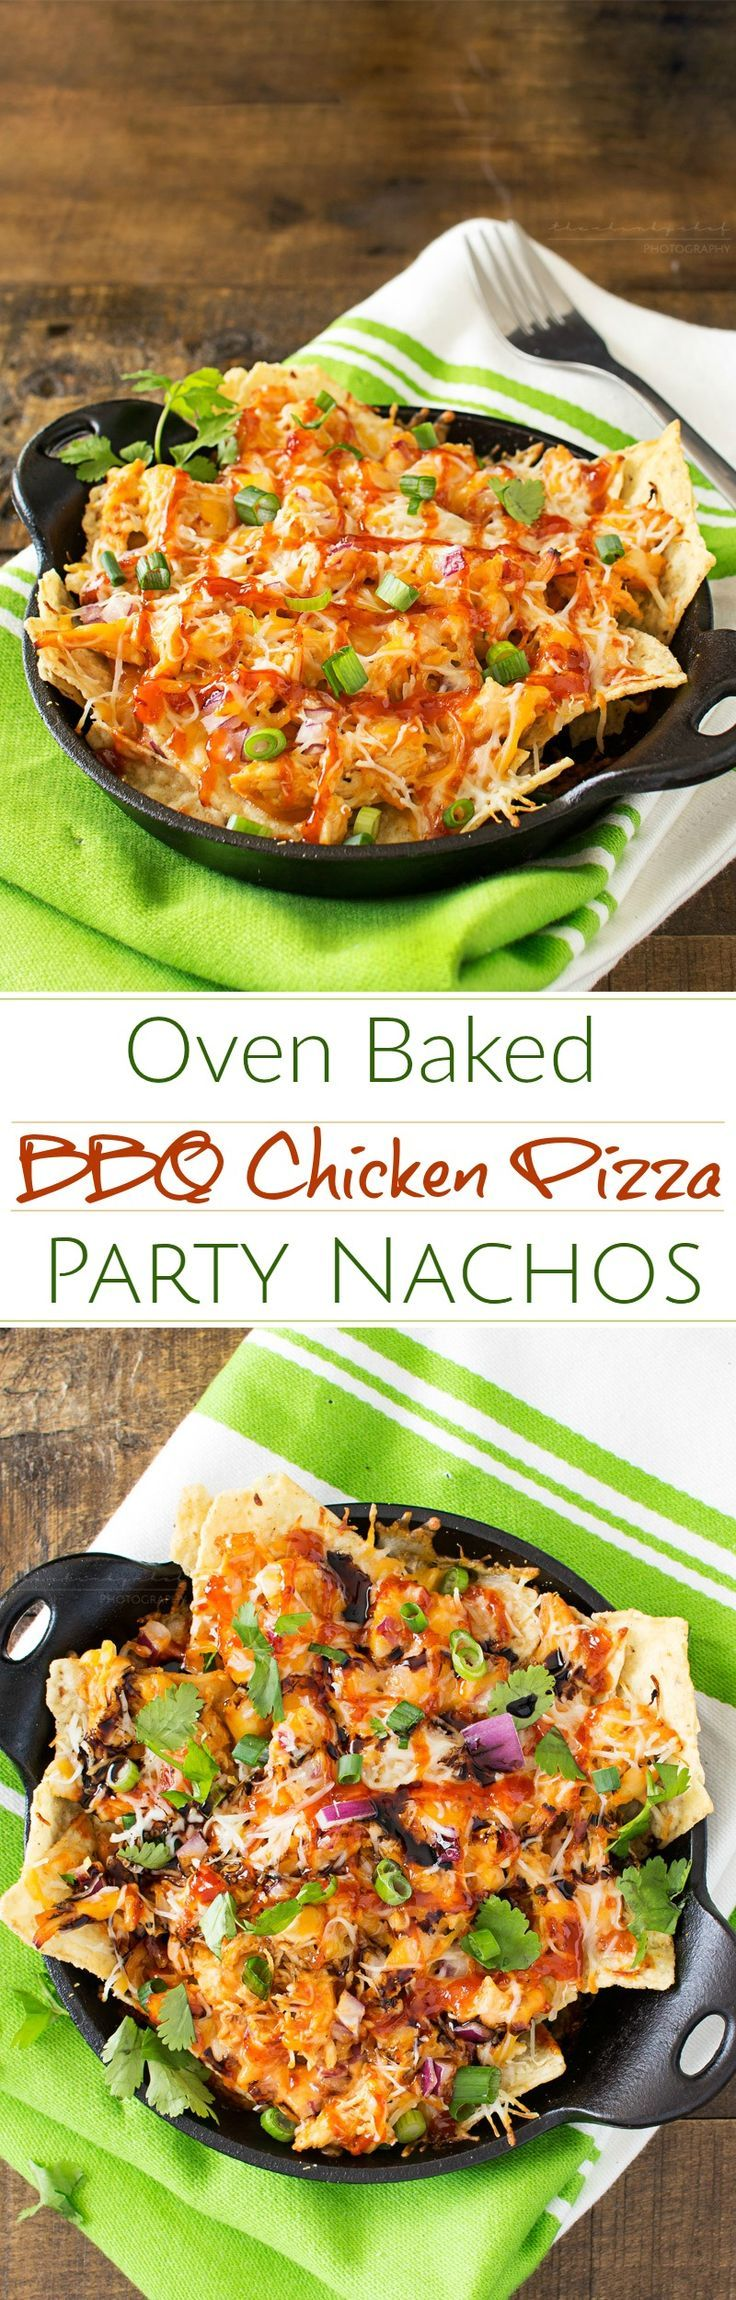 Oven Baked BBQ Chicken Pizza Nachos | Oven baked BBQ chicken pizza nachos... the awesome combination of homemade bbq sauce, juicy chicken, gooey cheese and tons of toppings! | http://thechunkychef.com